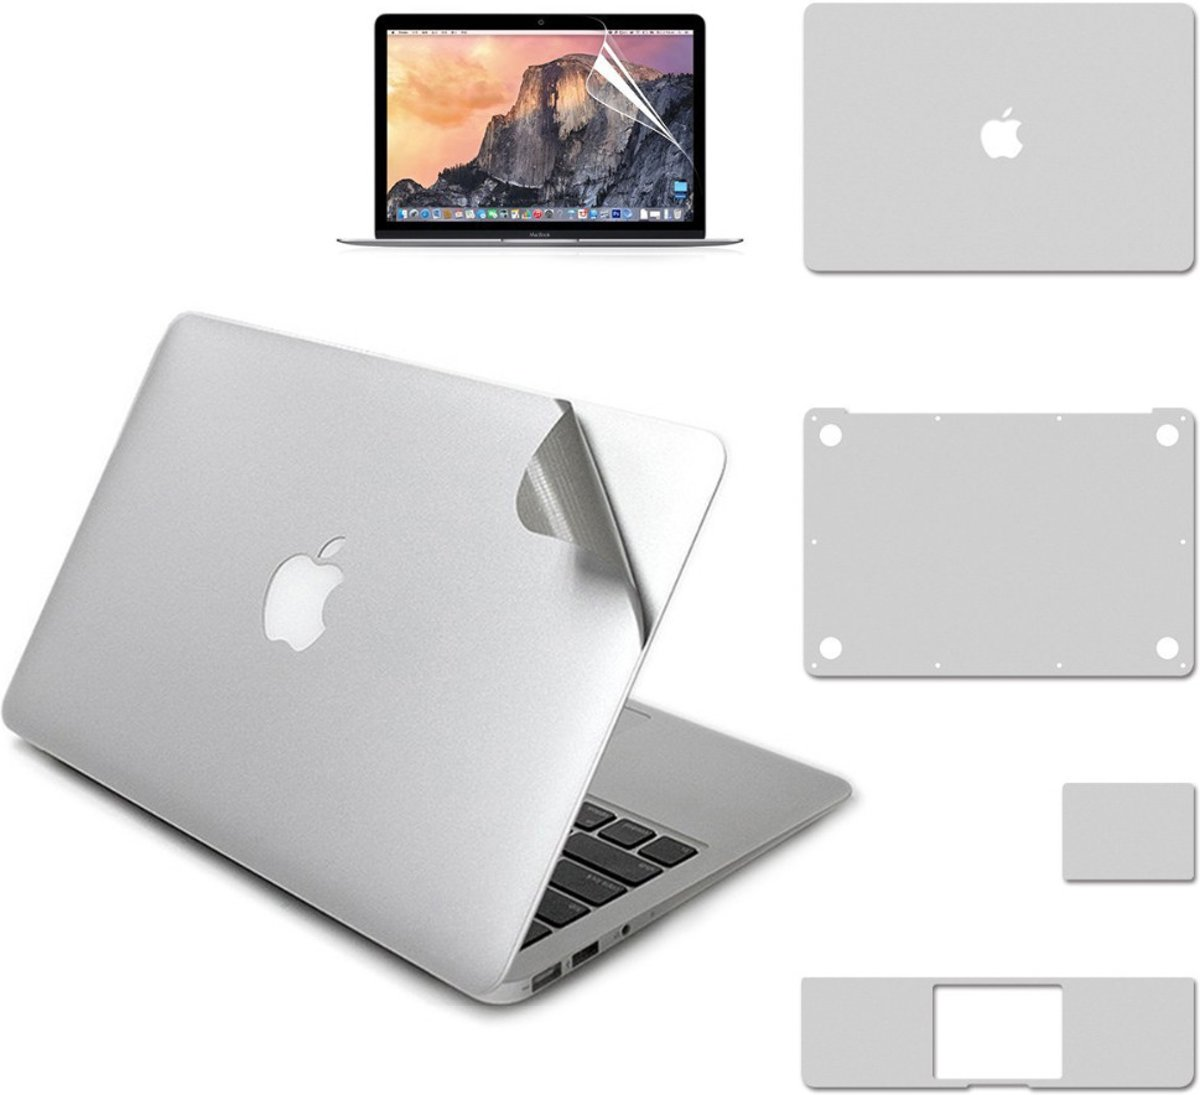 5-in-1 Nano Body Guard Anti Scratch 3M Protector voor Apple MacBook Pro 13 inch Retina A1502 / A1425  - Grijs